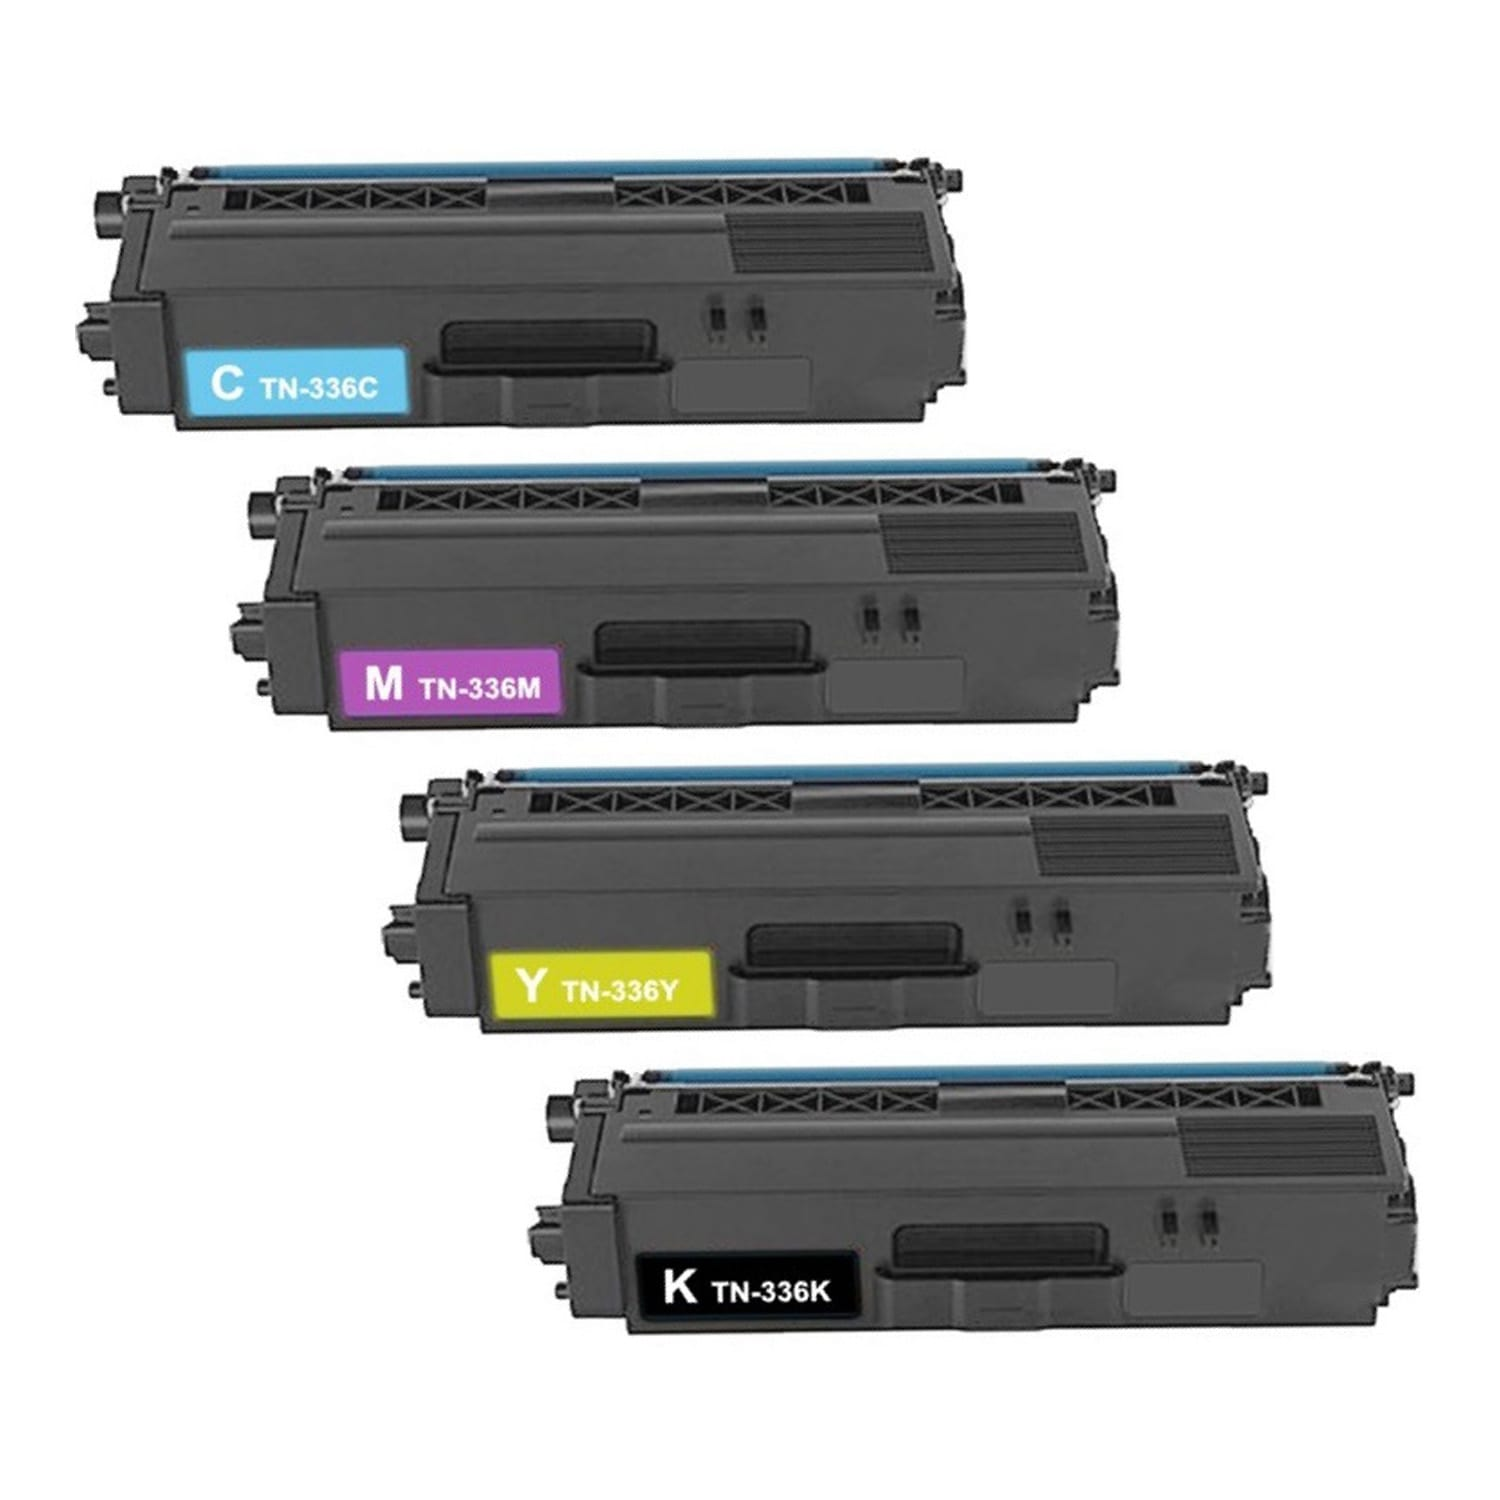 Compatible Brother TN336 Toner High Capacity Pack - 4 Cartridges